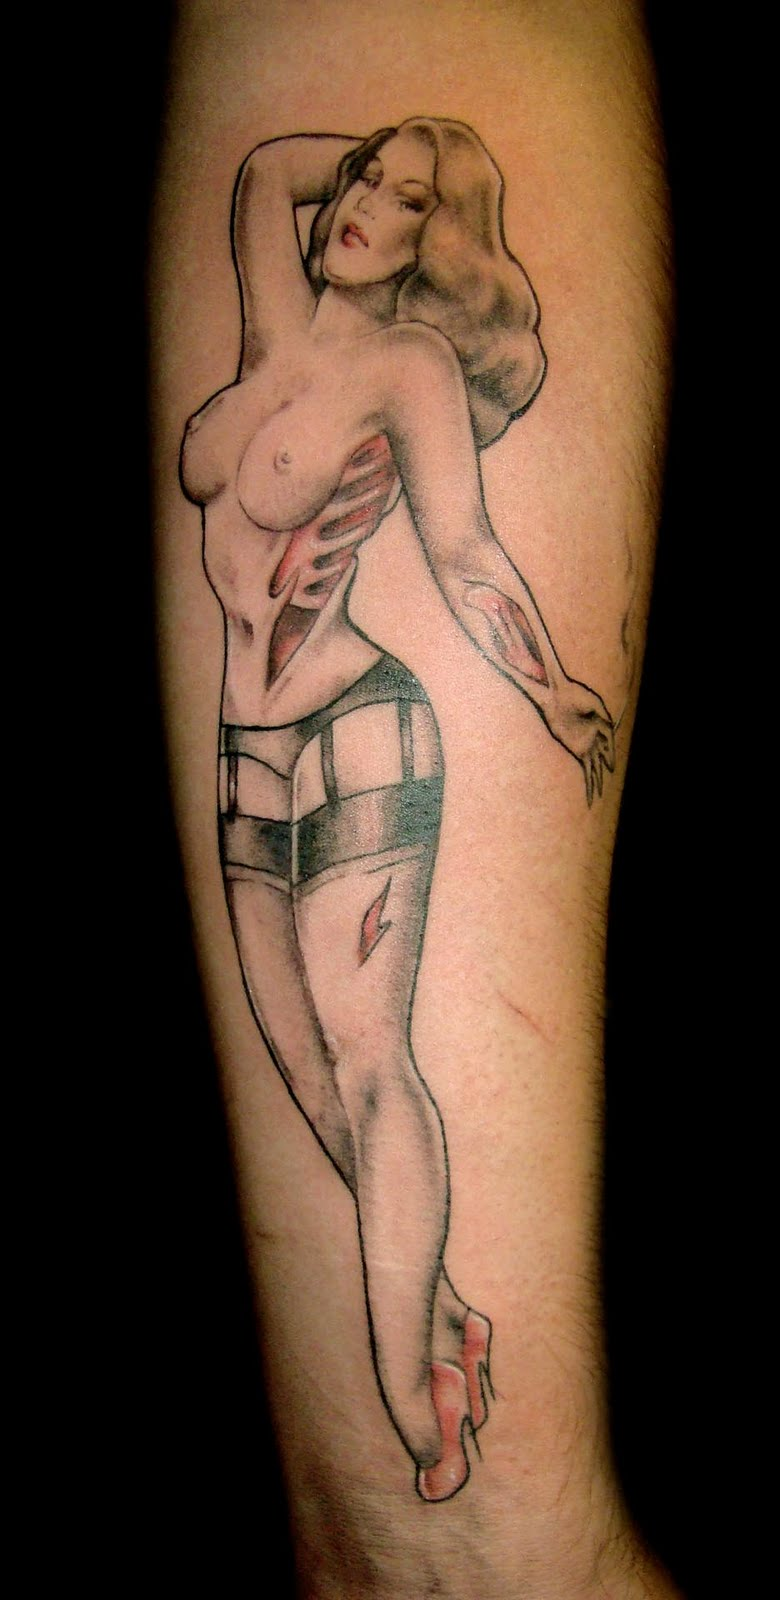 topless pin up girls tattoo